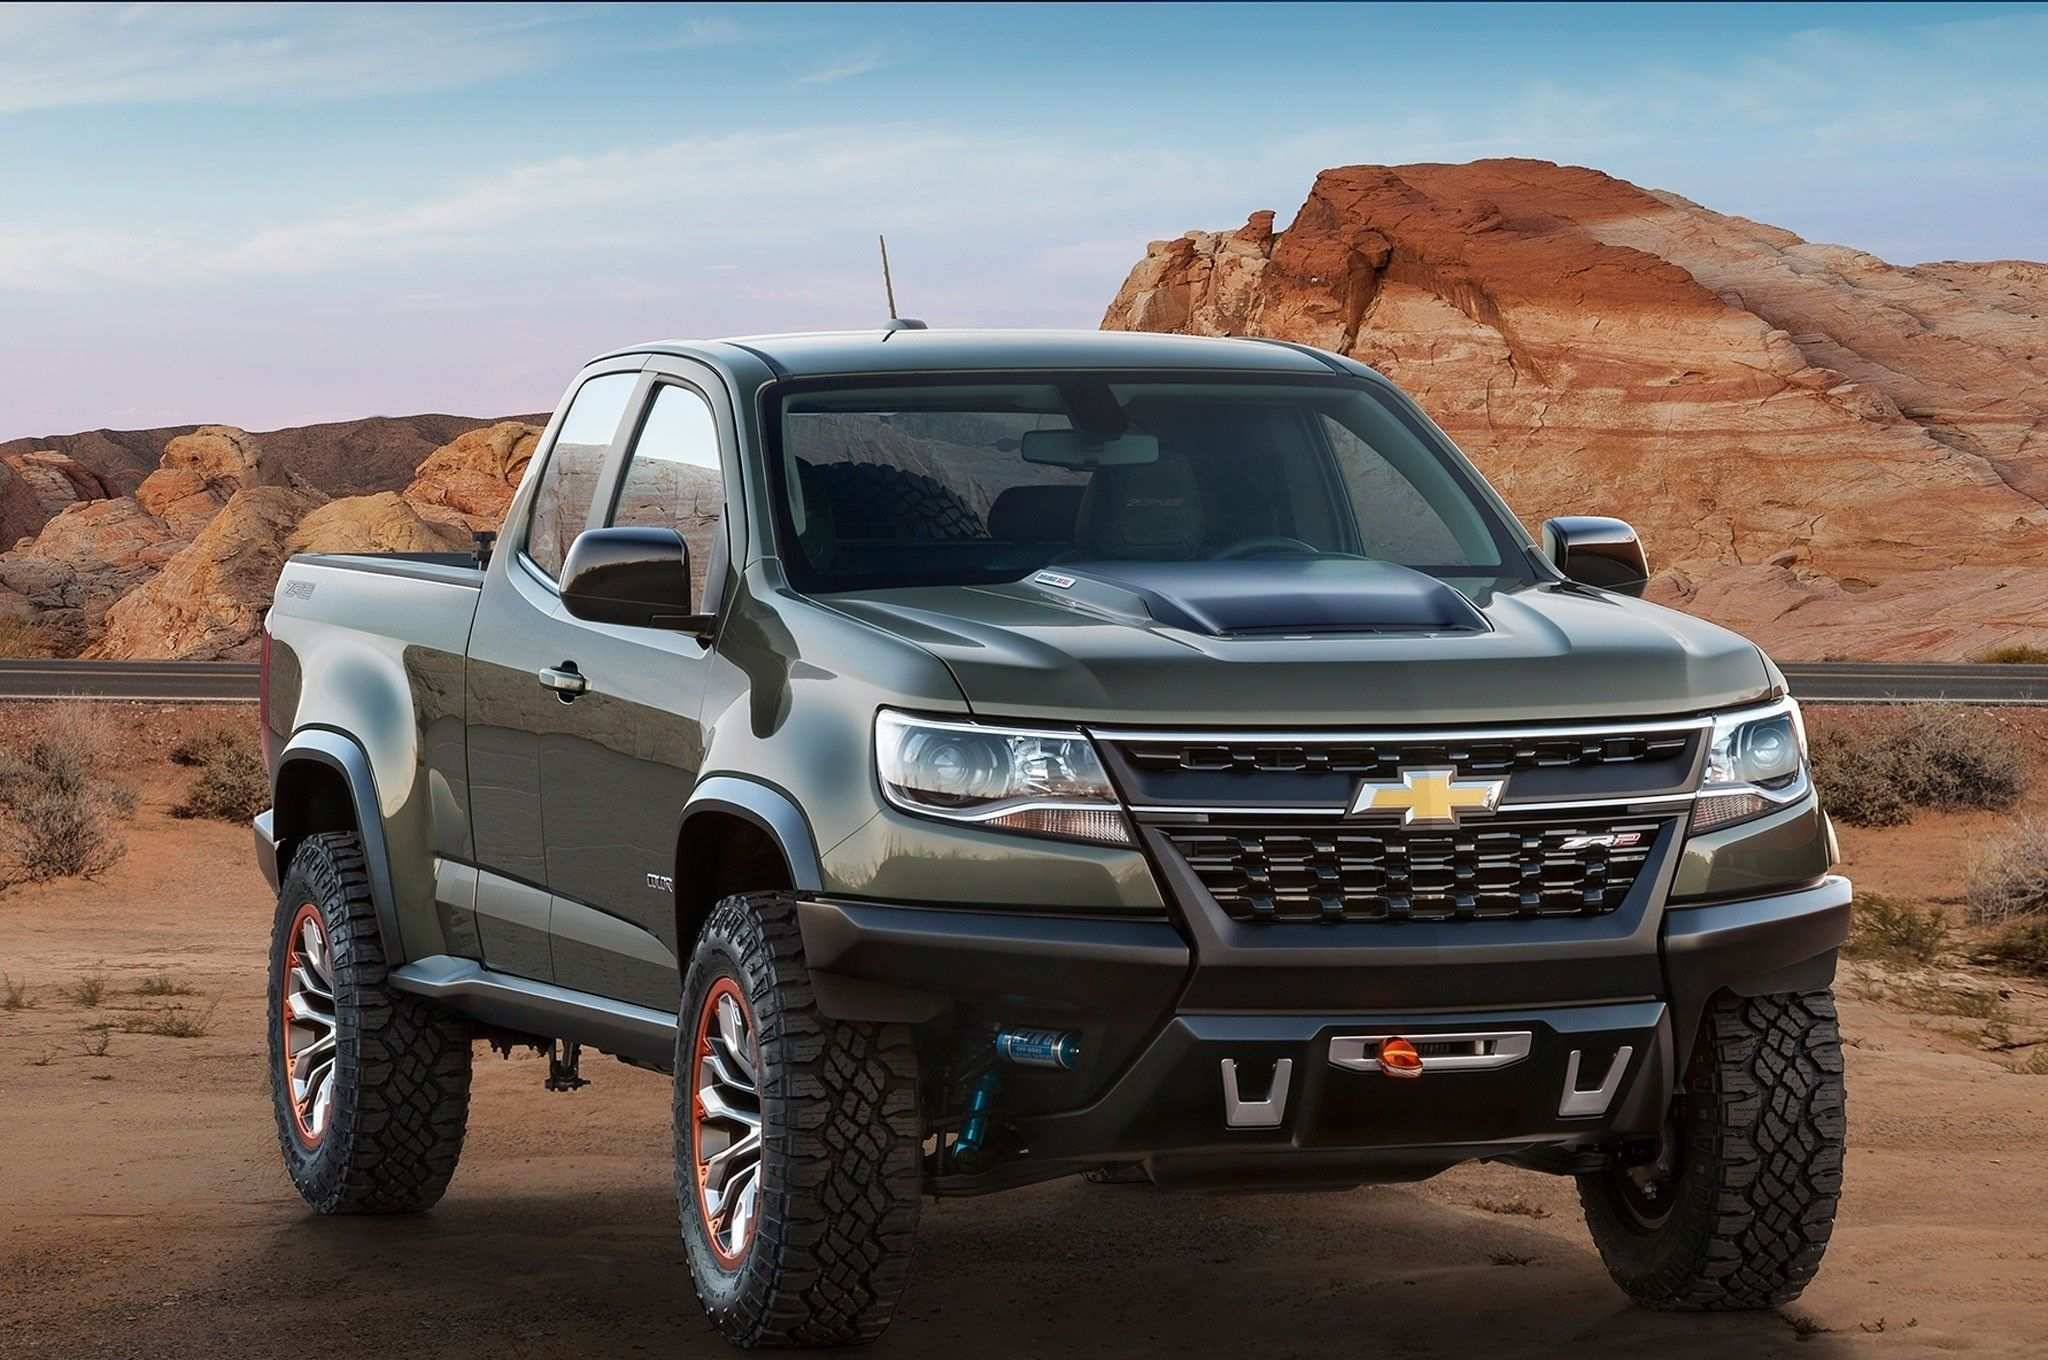 90 The Best 2019 Chevrolet Colorado Z72 Price And Review